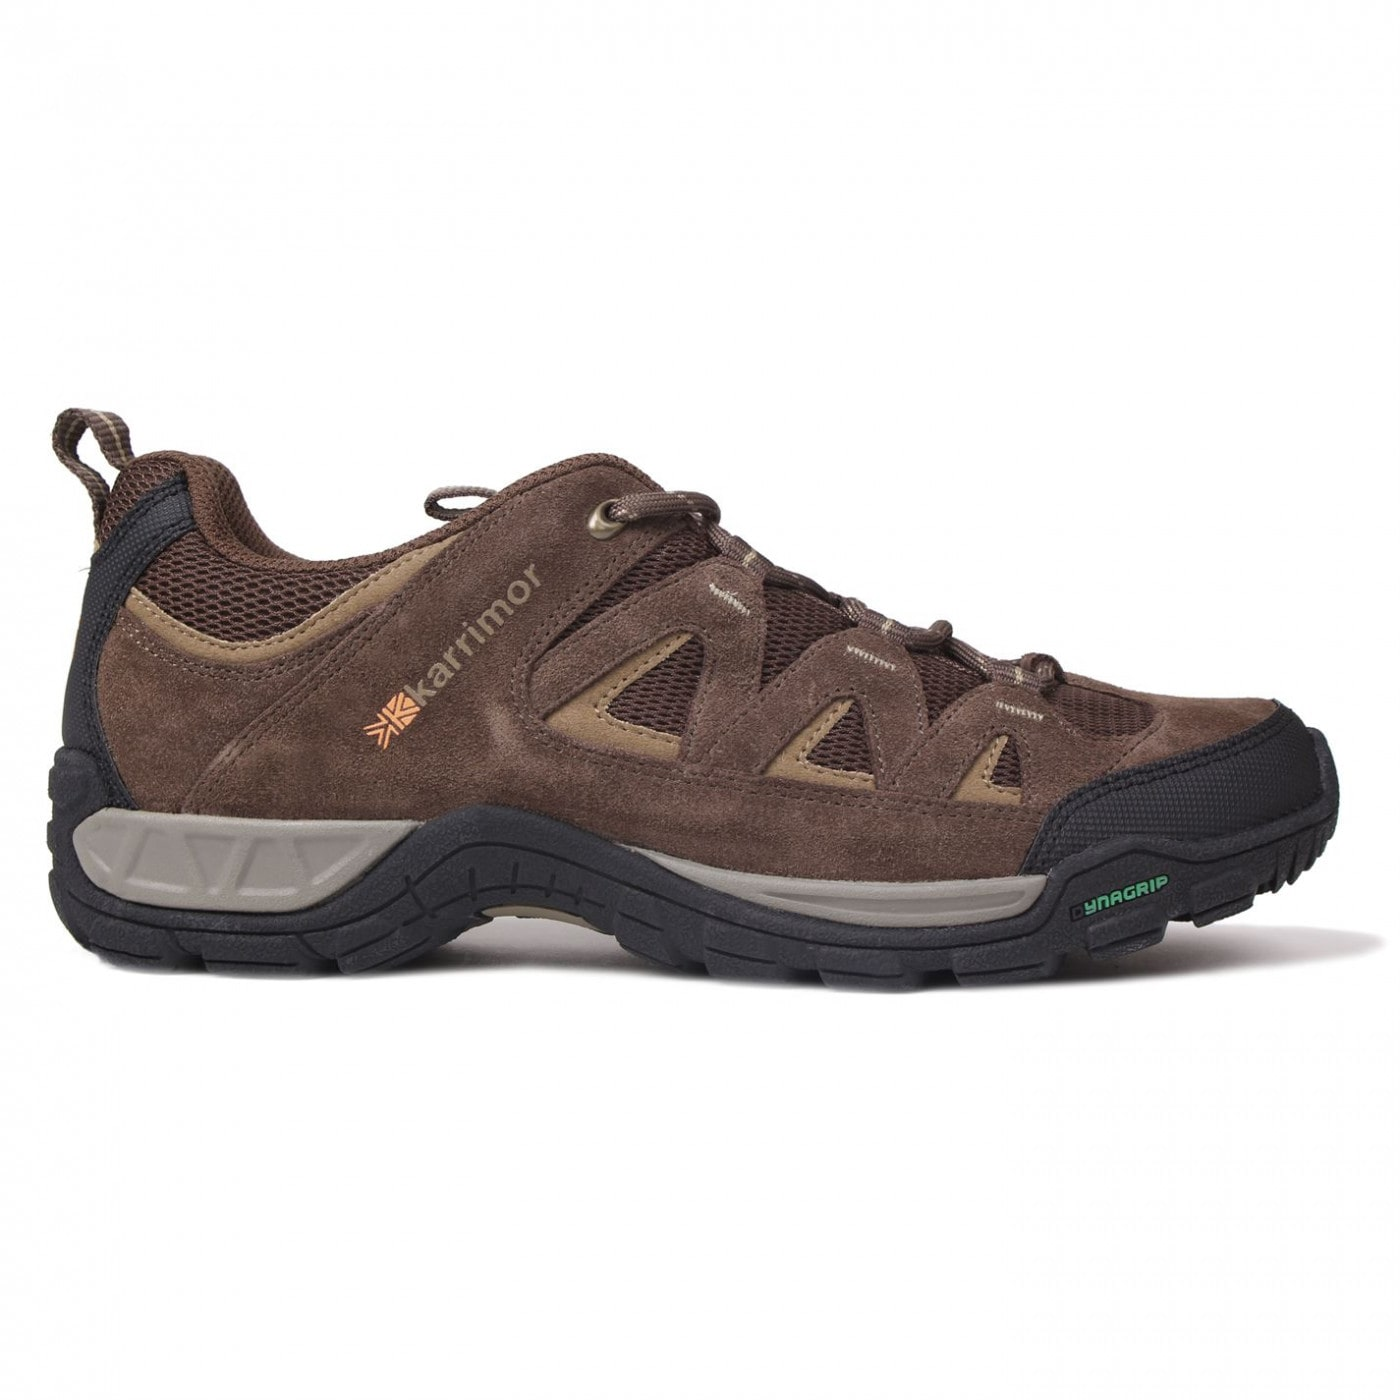 Men's walking shoes Karrimor Summit